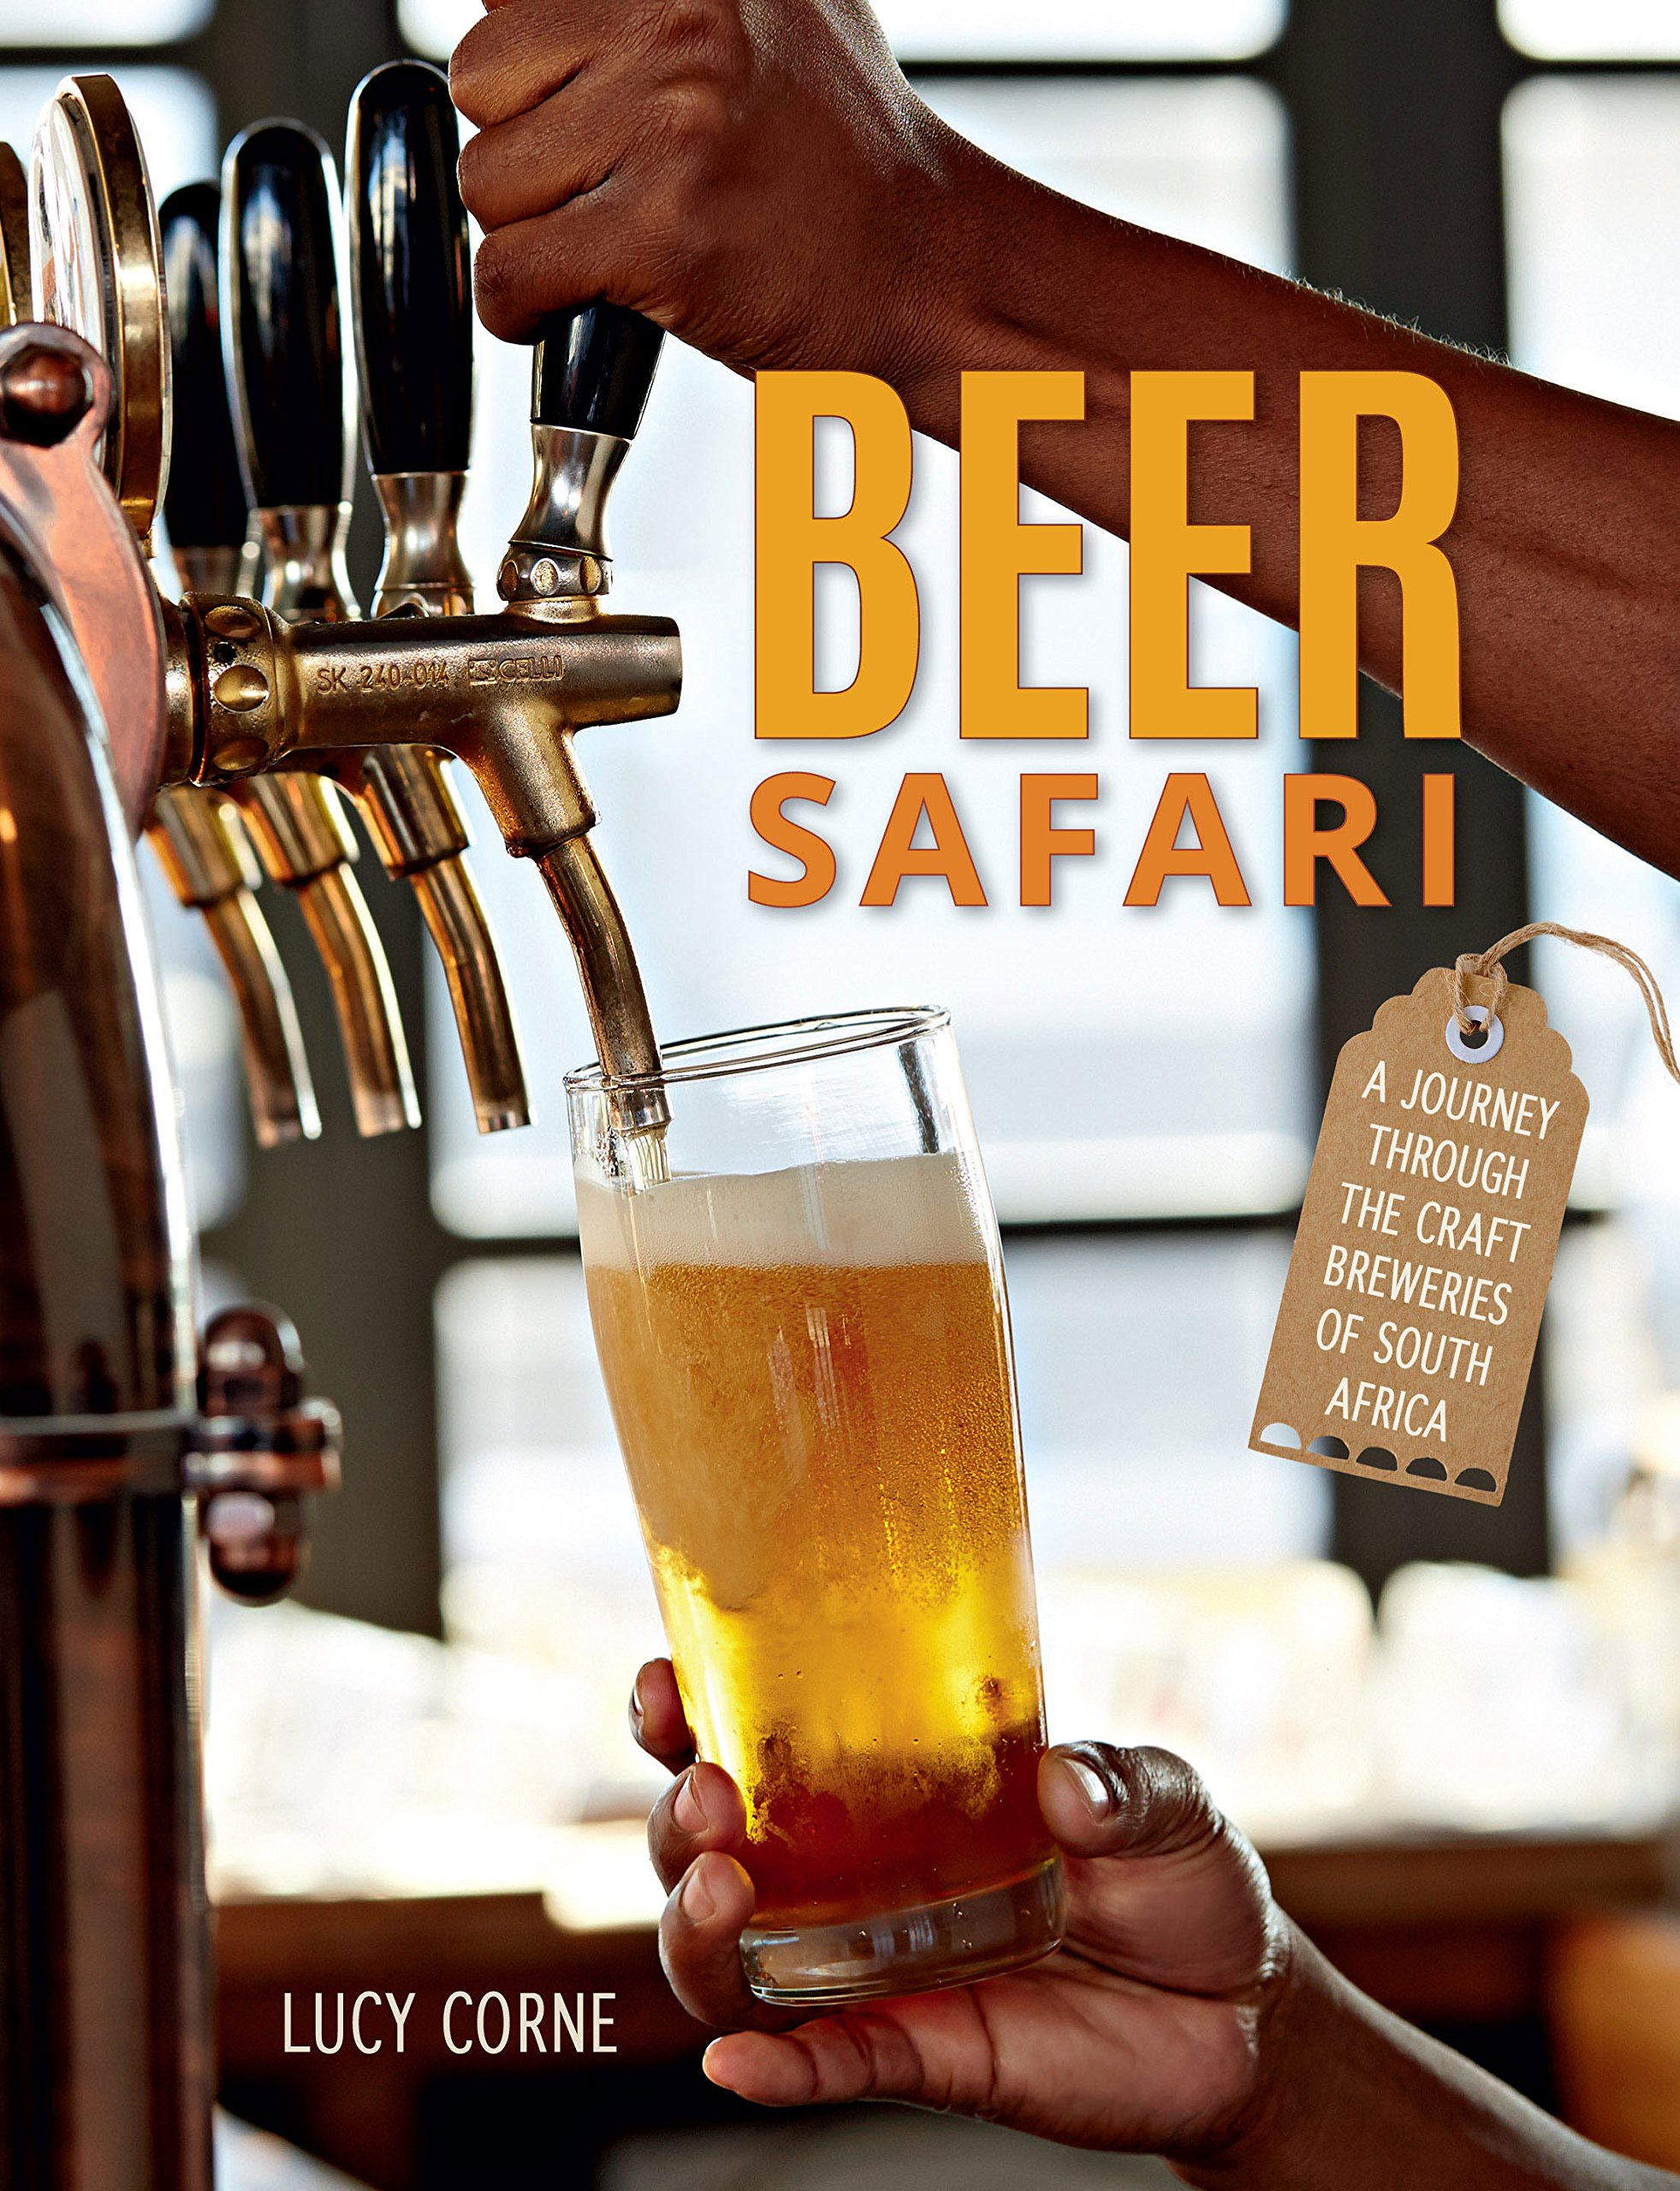 Beer Safari: A journey through the craft breweries of South Africa